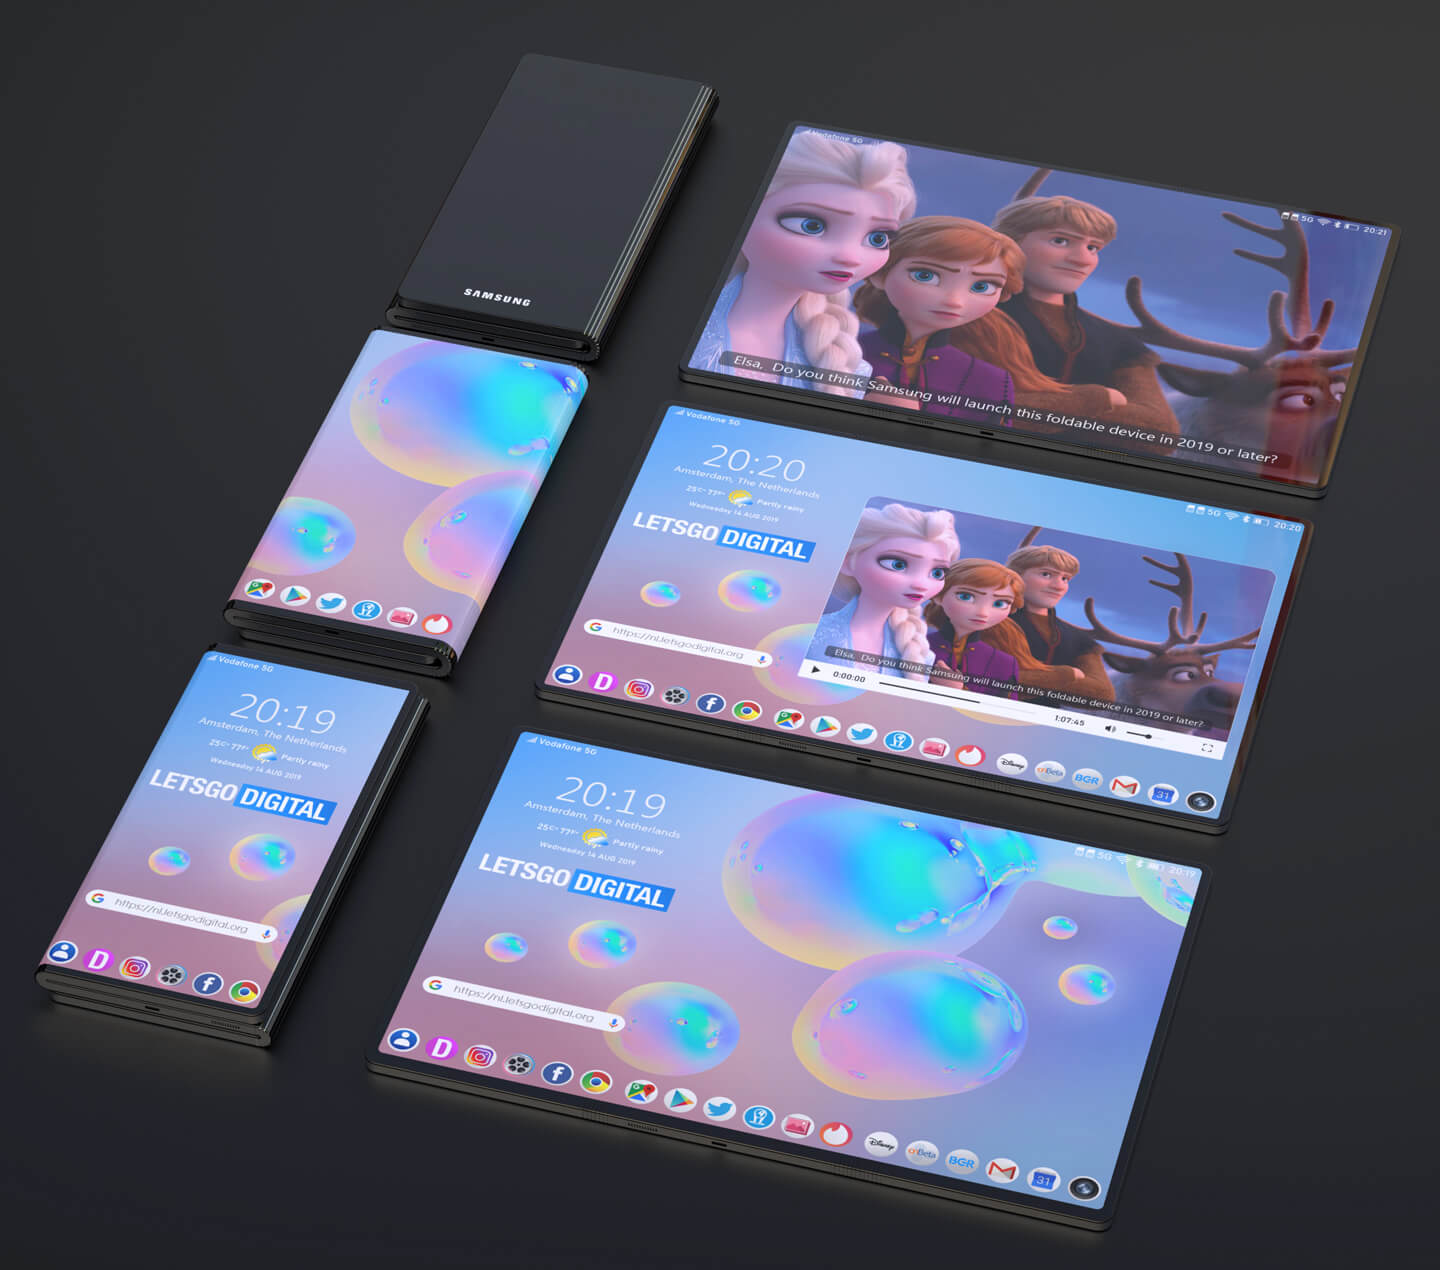 Samsung joins the tri-fold smartphone bandwagon with new patent 8